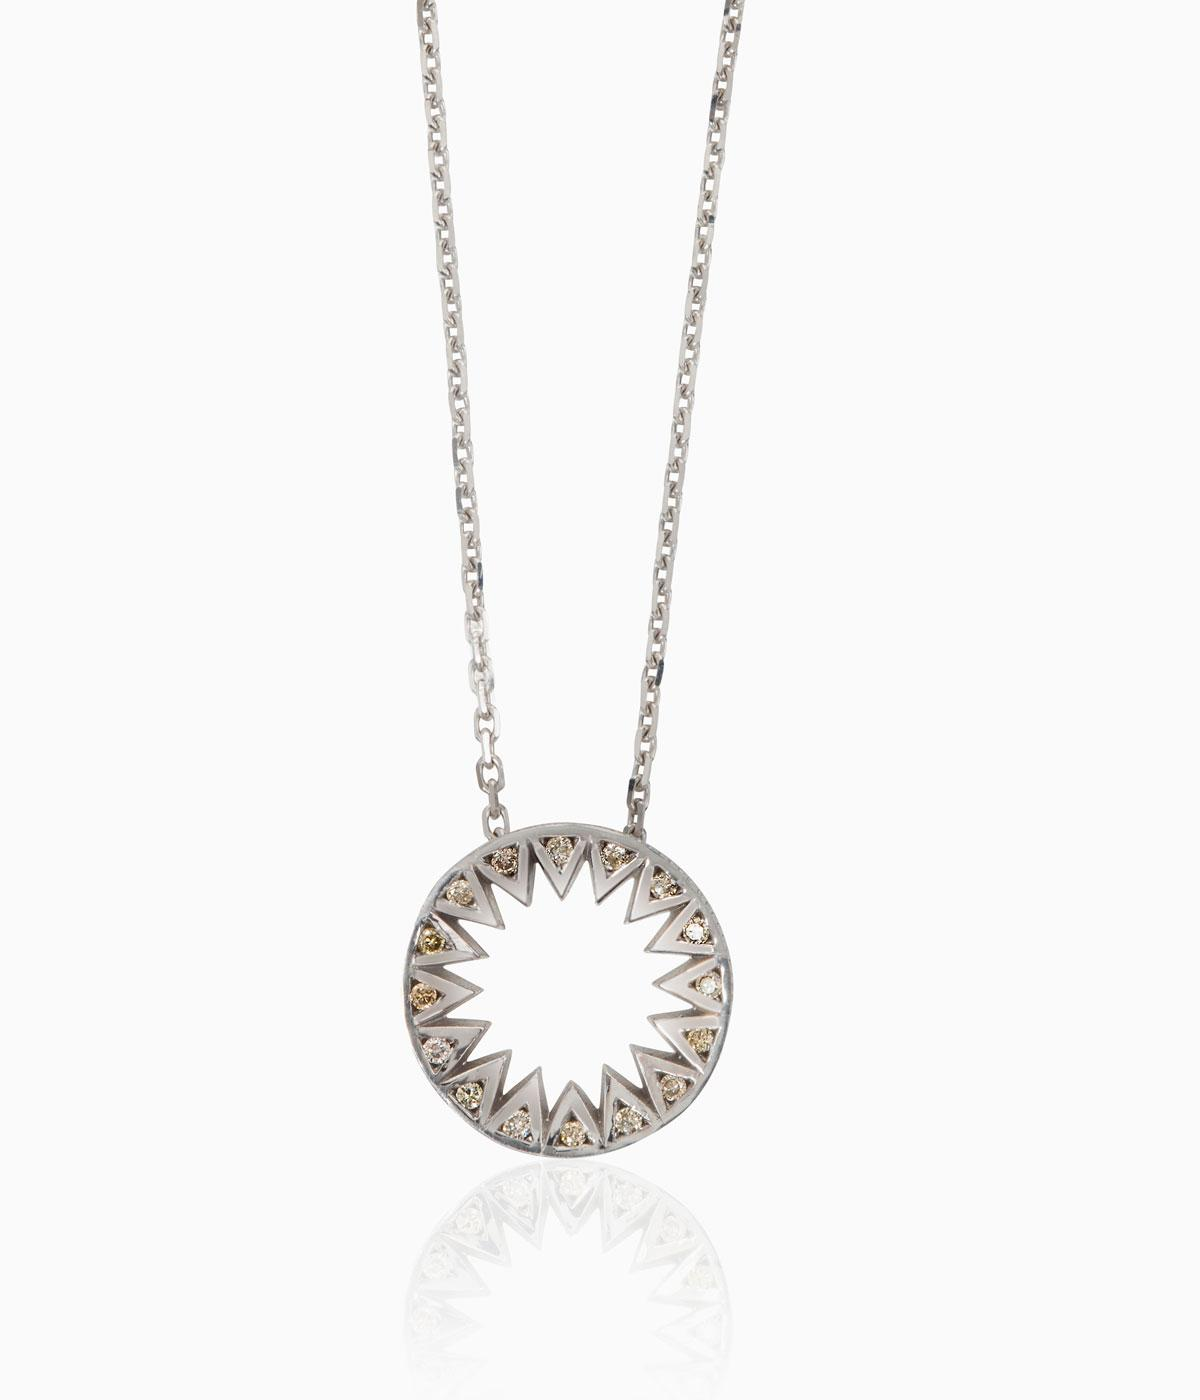 Flora Bhattachery diamond necklace